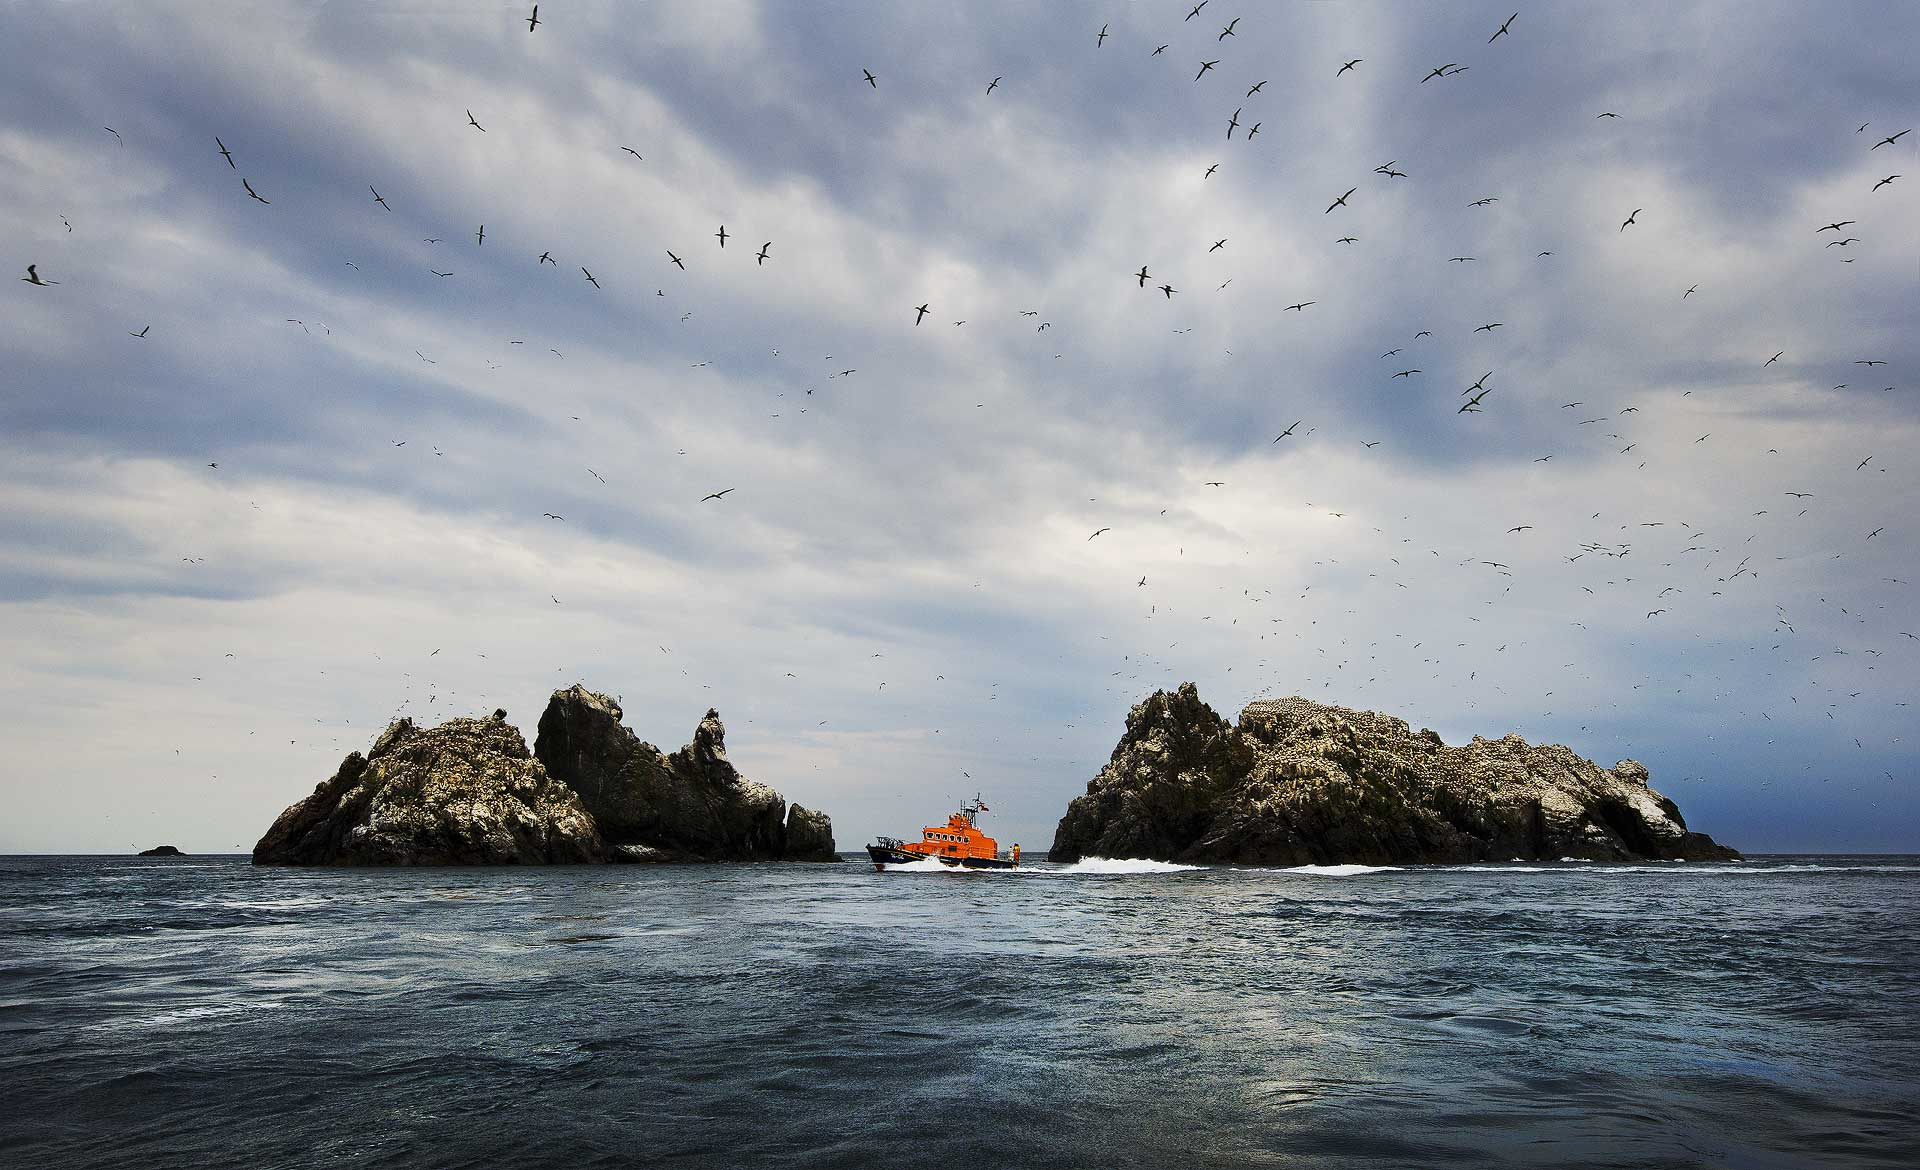 lifeboat-finisterre-goodfromyou-14.jpg